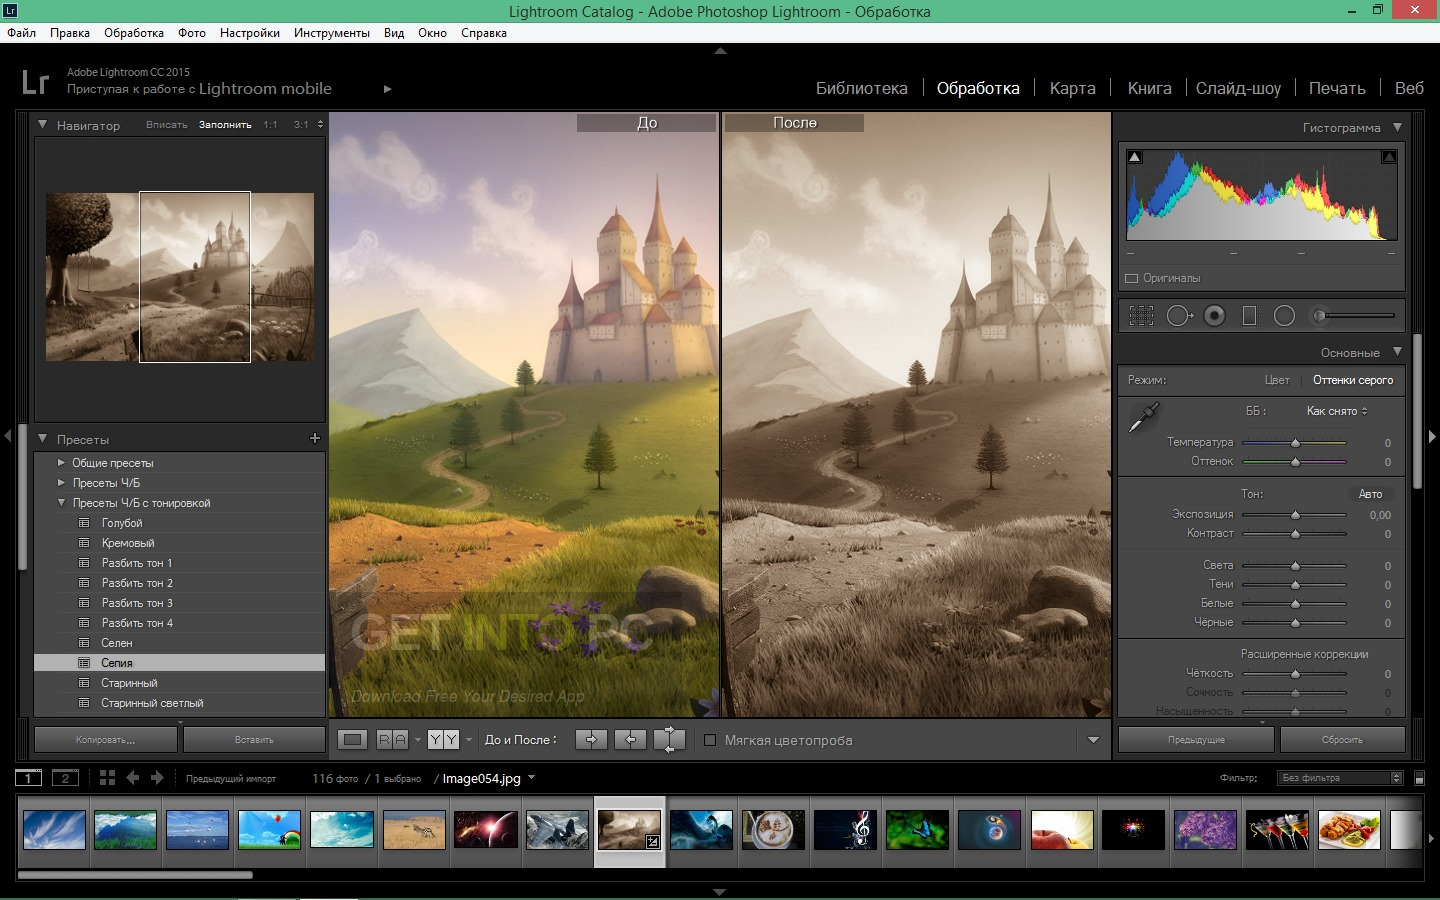 Adobe Photoshop Lightroom CC 68 Free Download